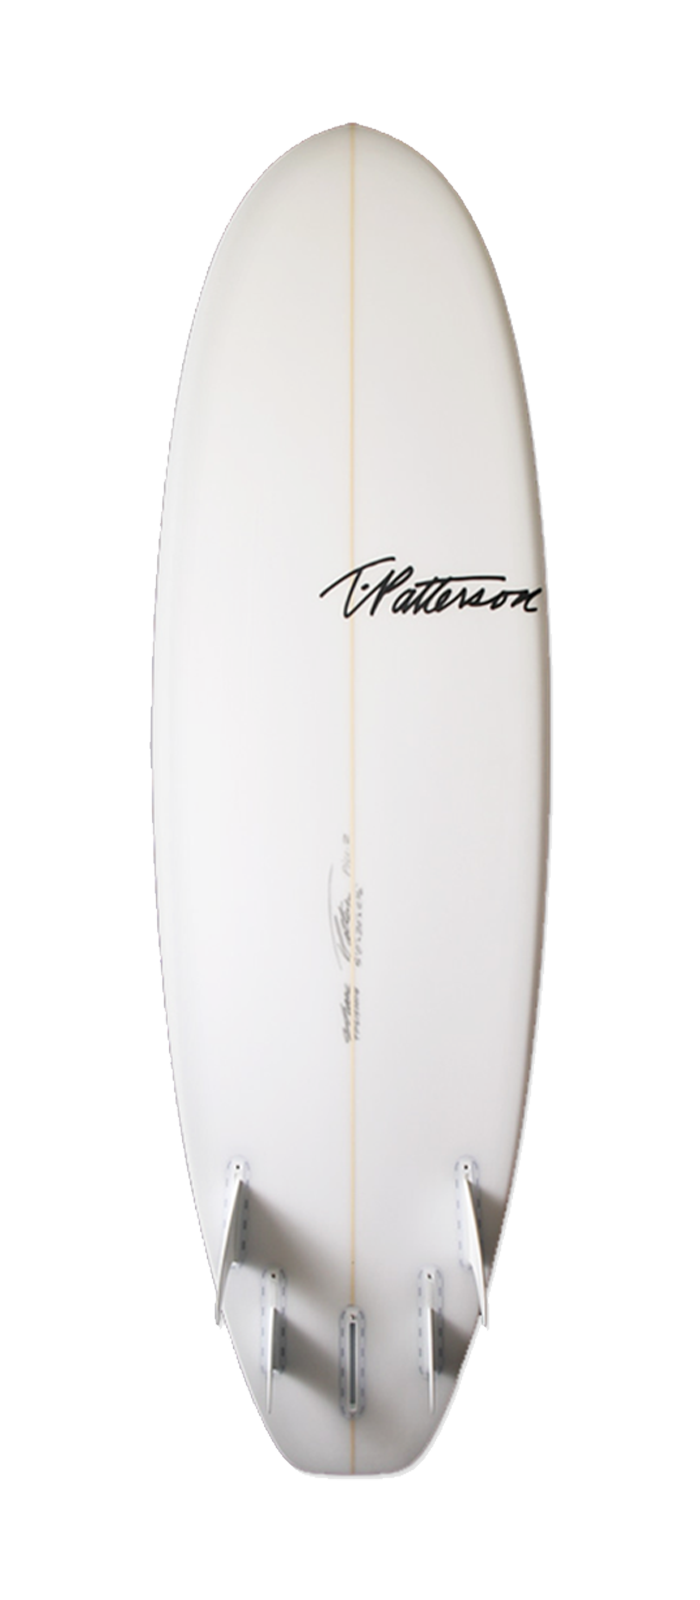 The Pill surfboard model bottom